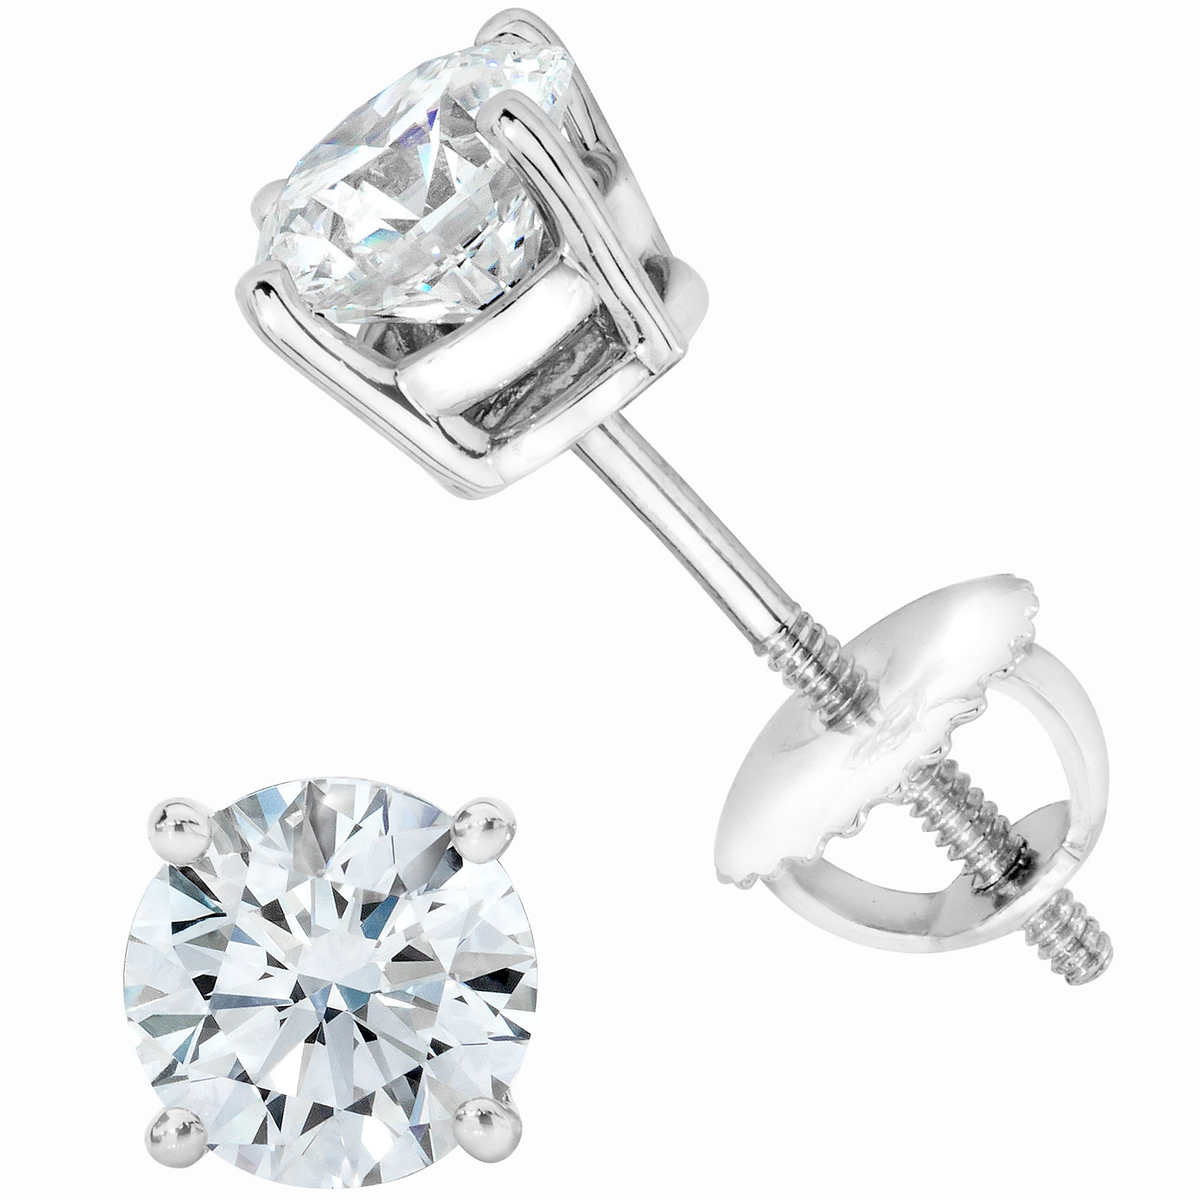 Round Brilliant 120 Ctw Vs2 Clarity, I Color Diamond 14kt White Gold  Screwback Stud Earrings